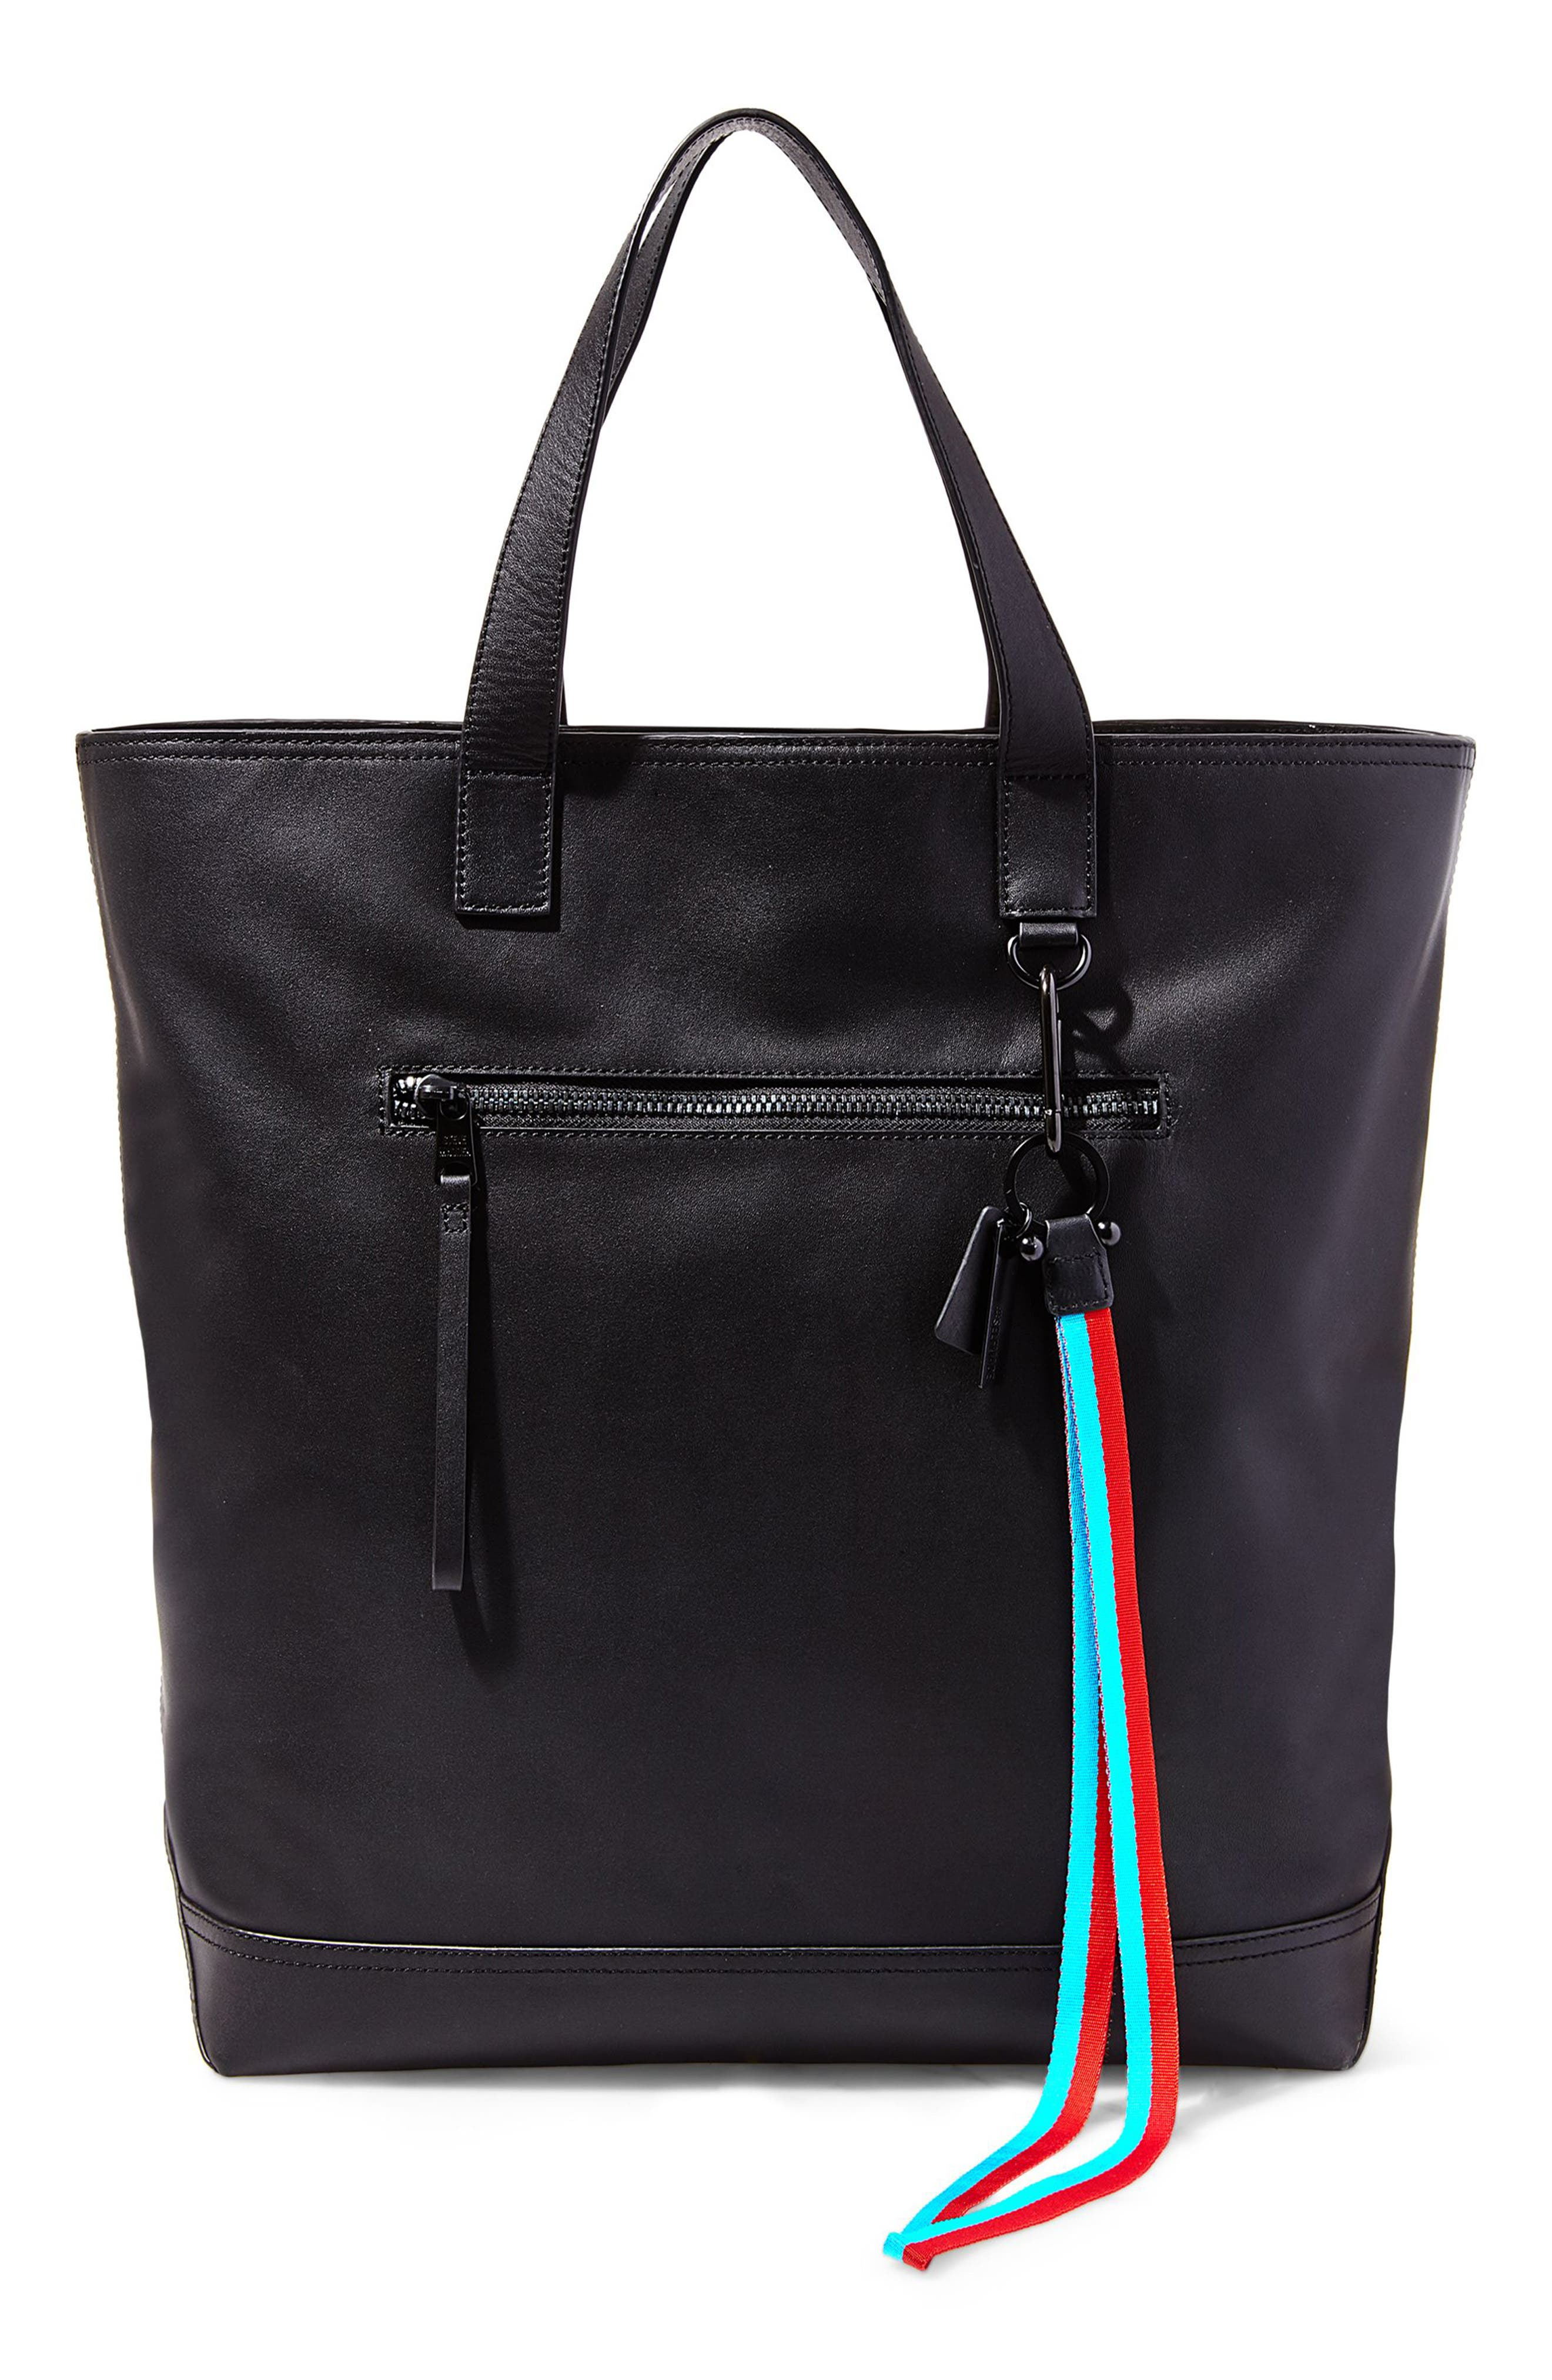 GQ x Steve Madden Leather Tote Bag,                         Main,                         color, Black